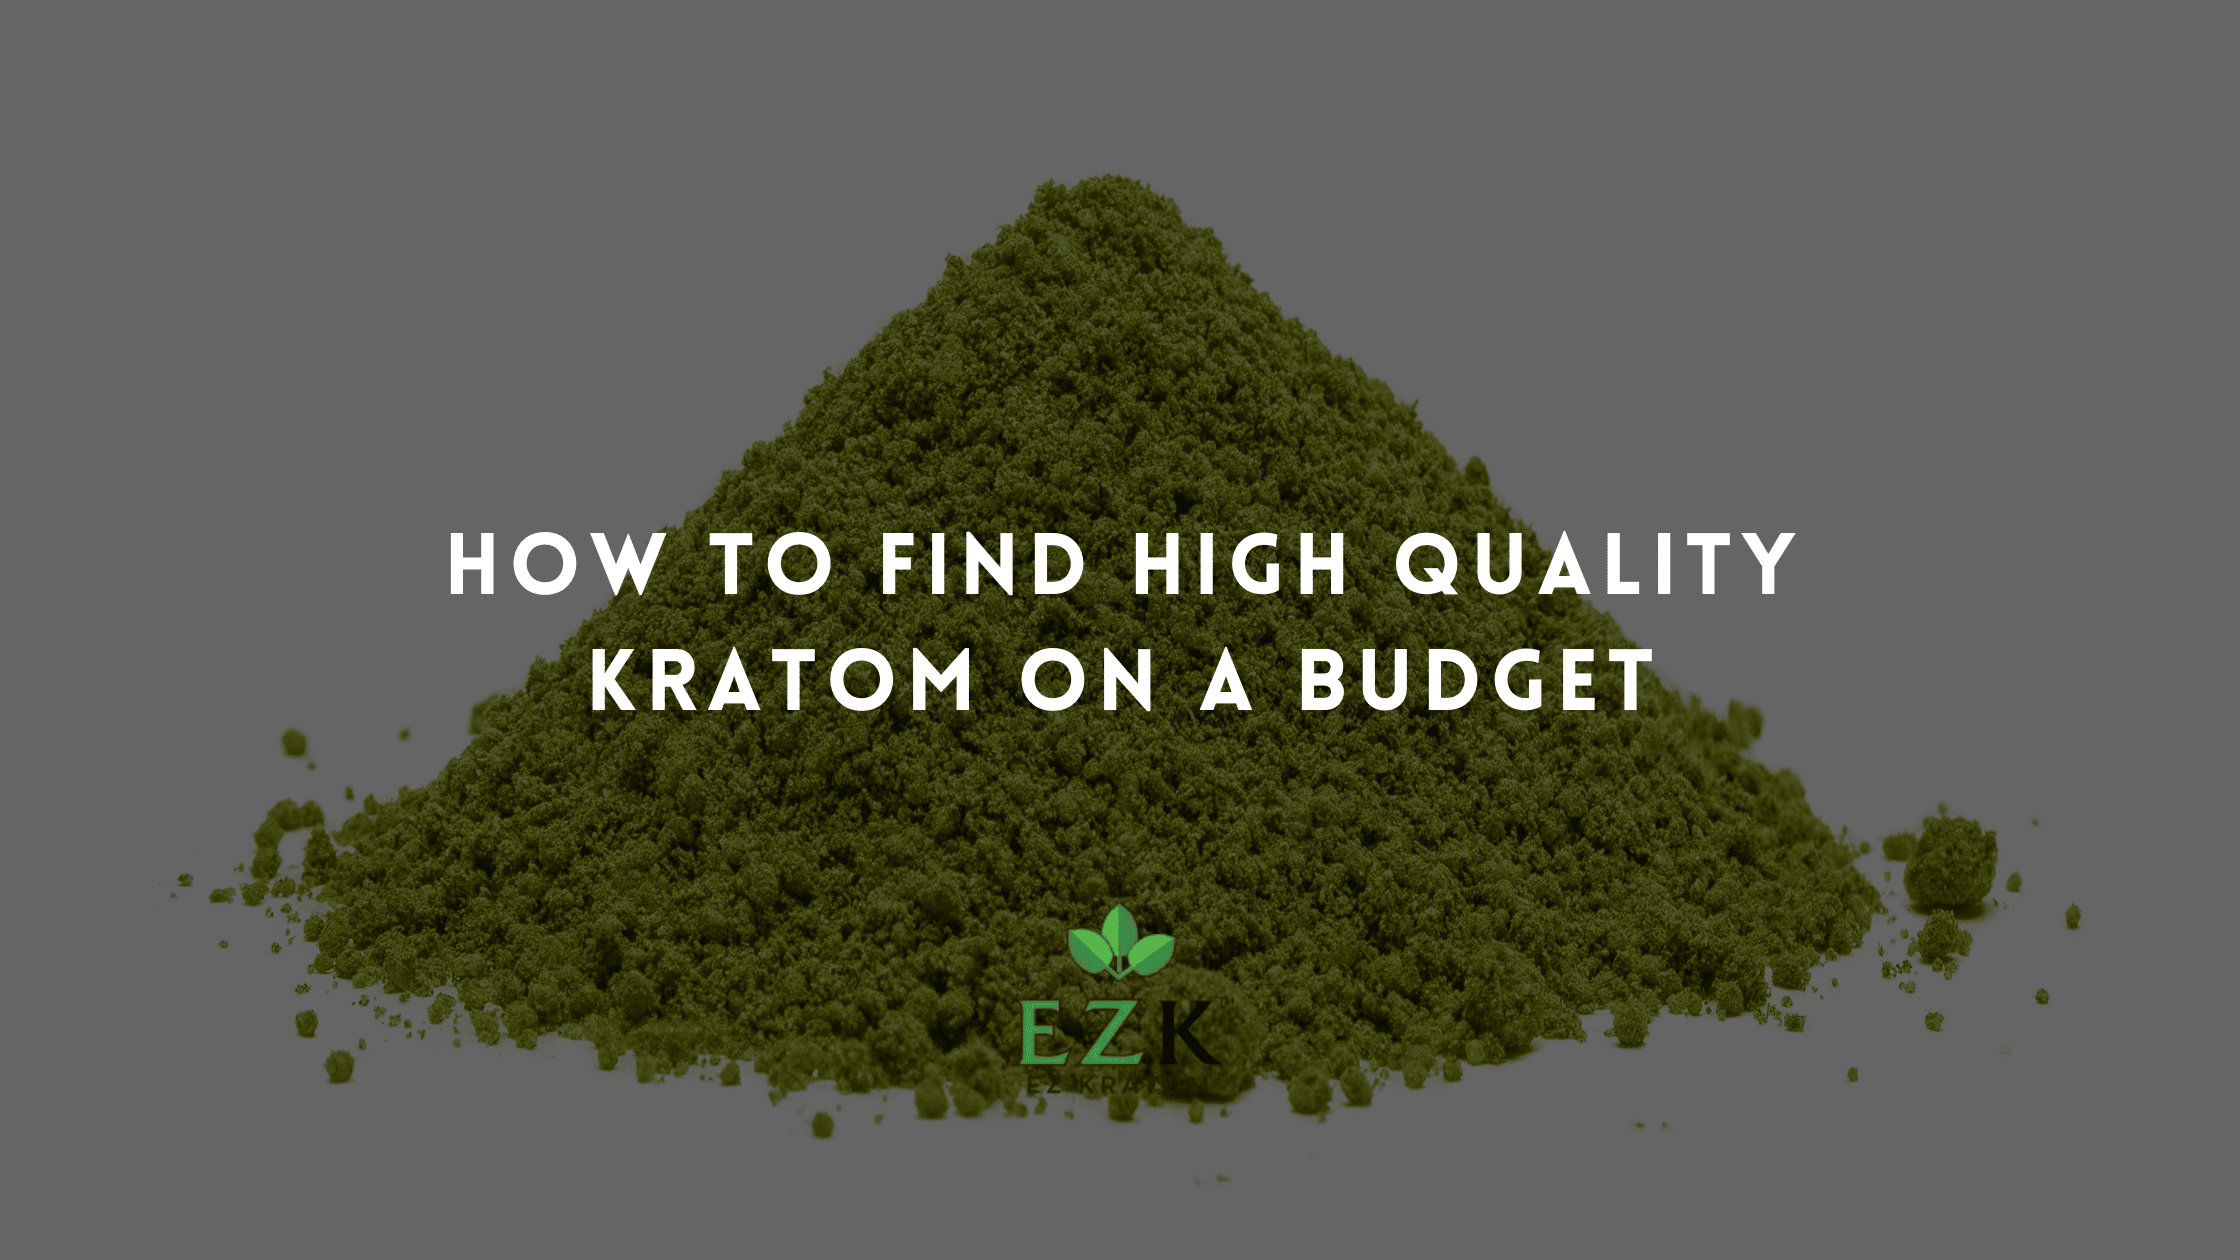 How to Find High Quality Kratom on a Budget